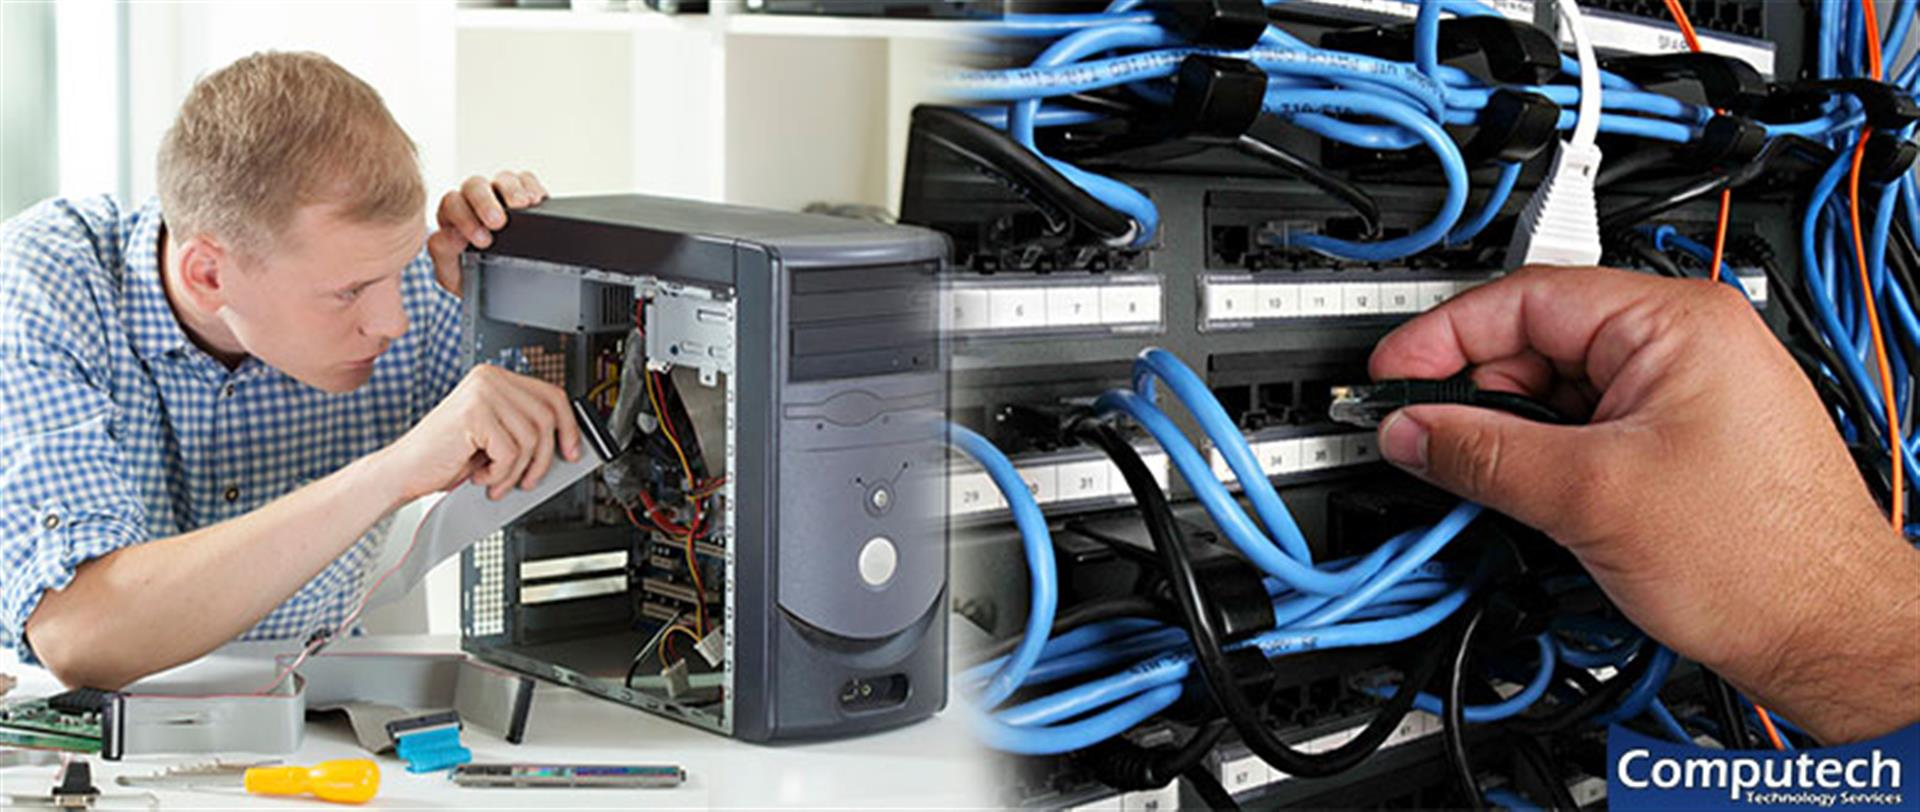 Semmes Alabama Onsite PC & Printer Repair, Networking, Telecom & Data Cabling Solutions